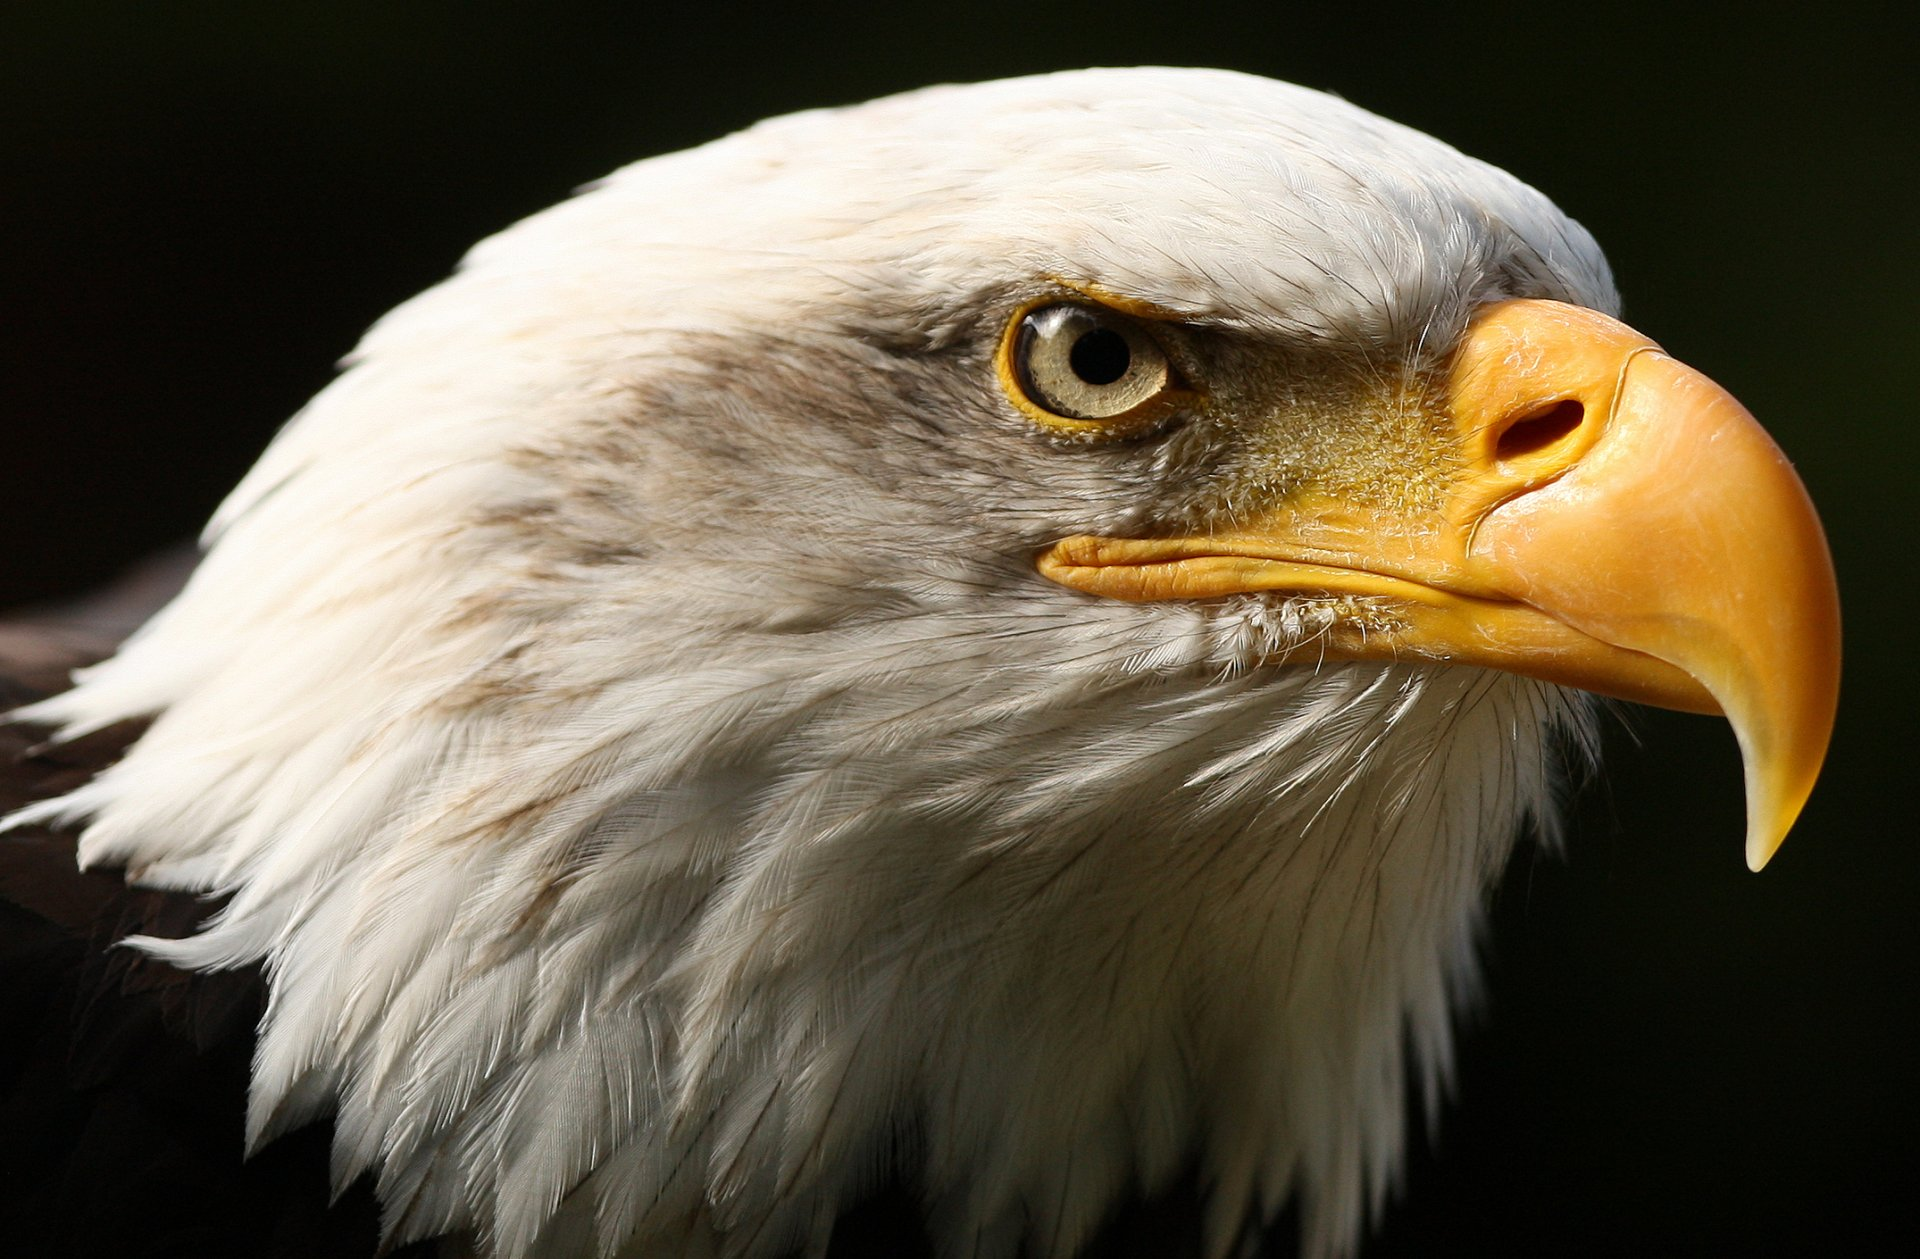 Eagle Bird Collection Of Wild Life Animals Wallpapers For: Eagle HD Wallpaper